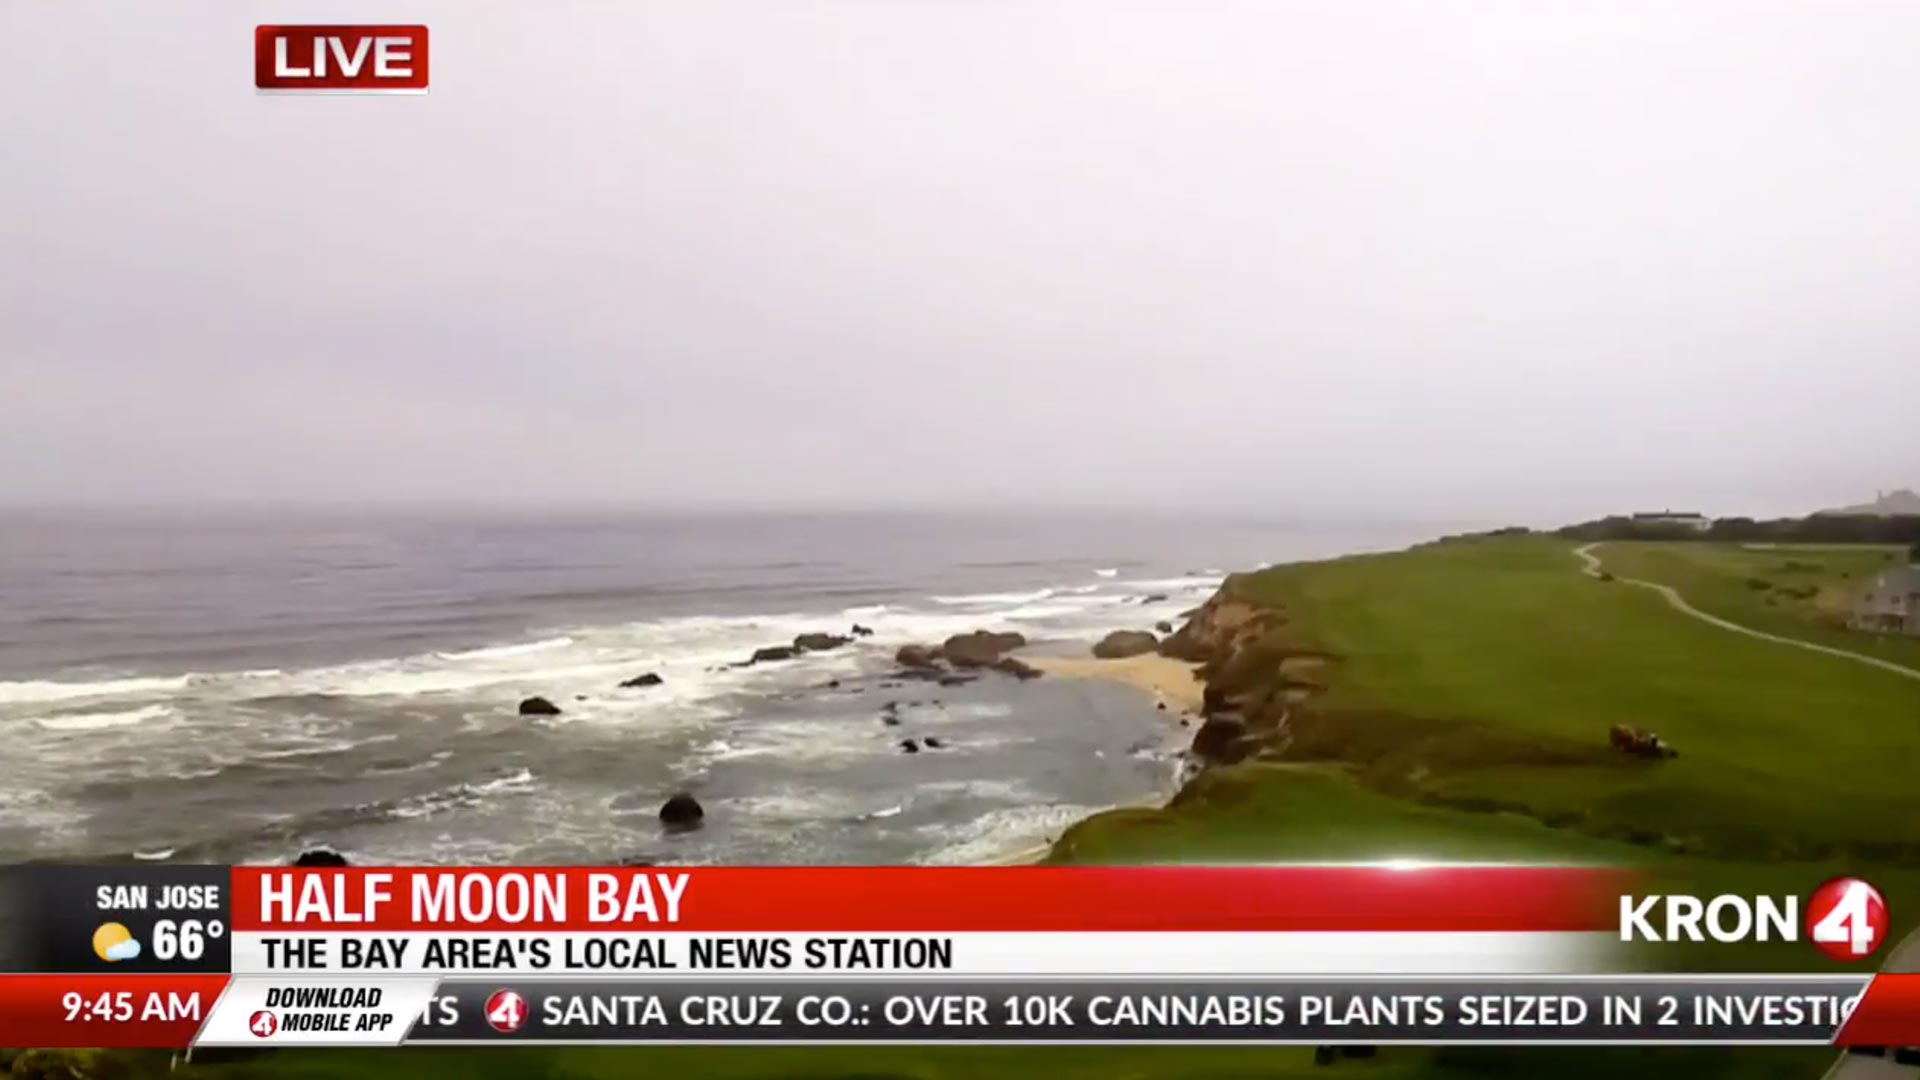 Half Moon Bay, California - Local Weather/TV broadcasting their webcam